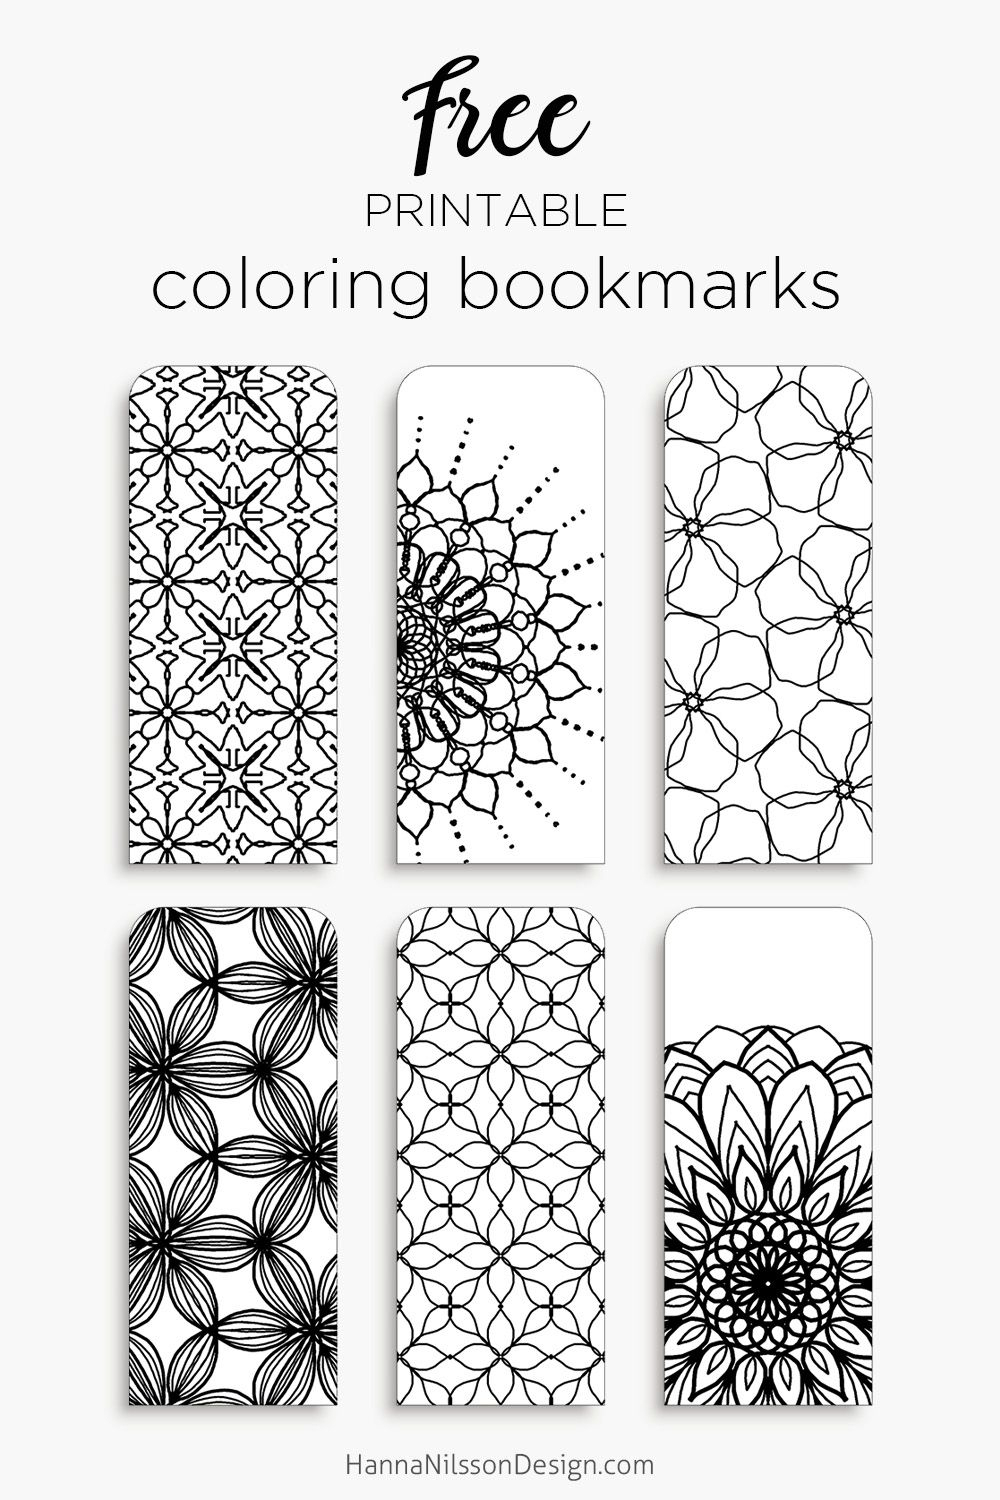 Coloring Bookmarks – Print, Color And Read | Hanna Nilsson Design - Free Printable Bookmarks To Color